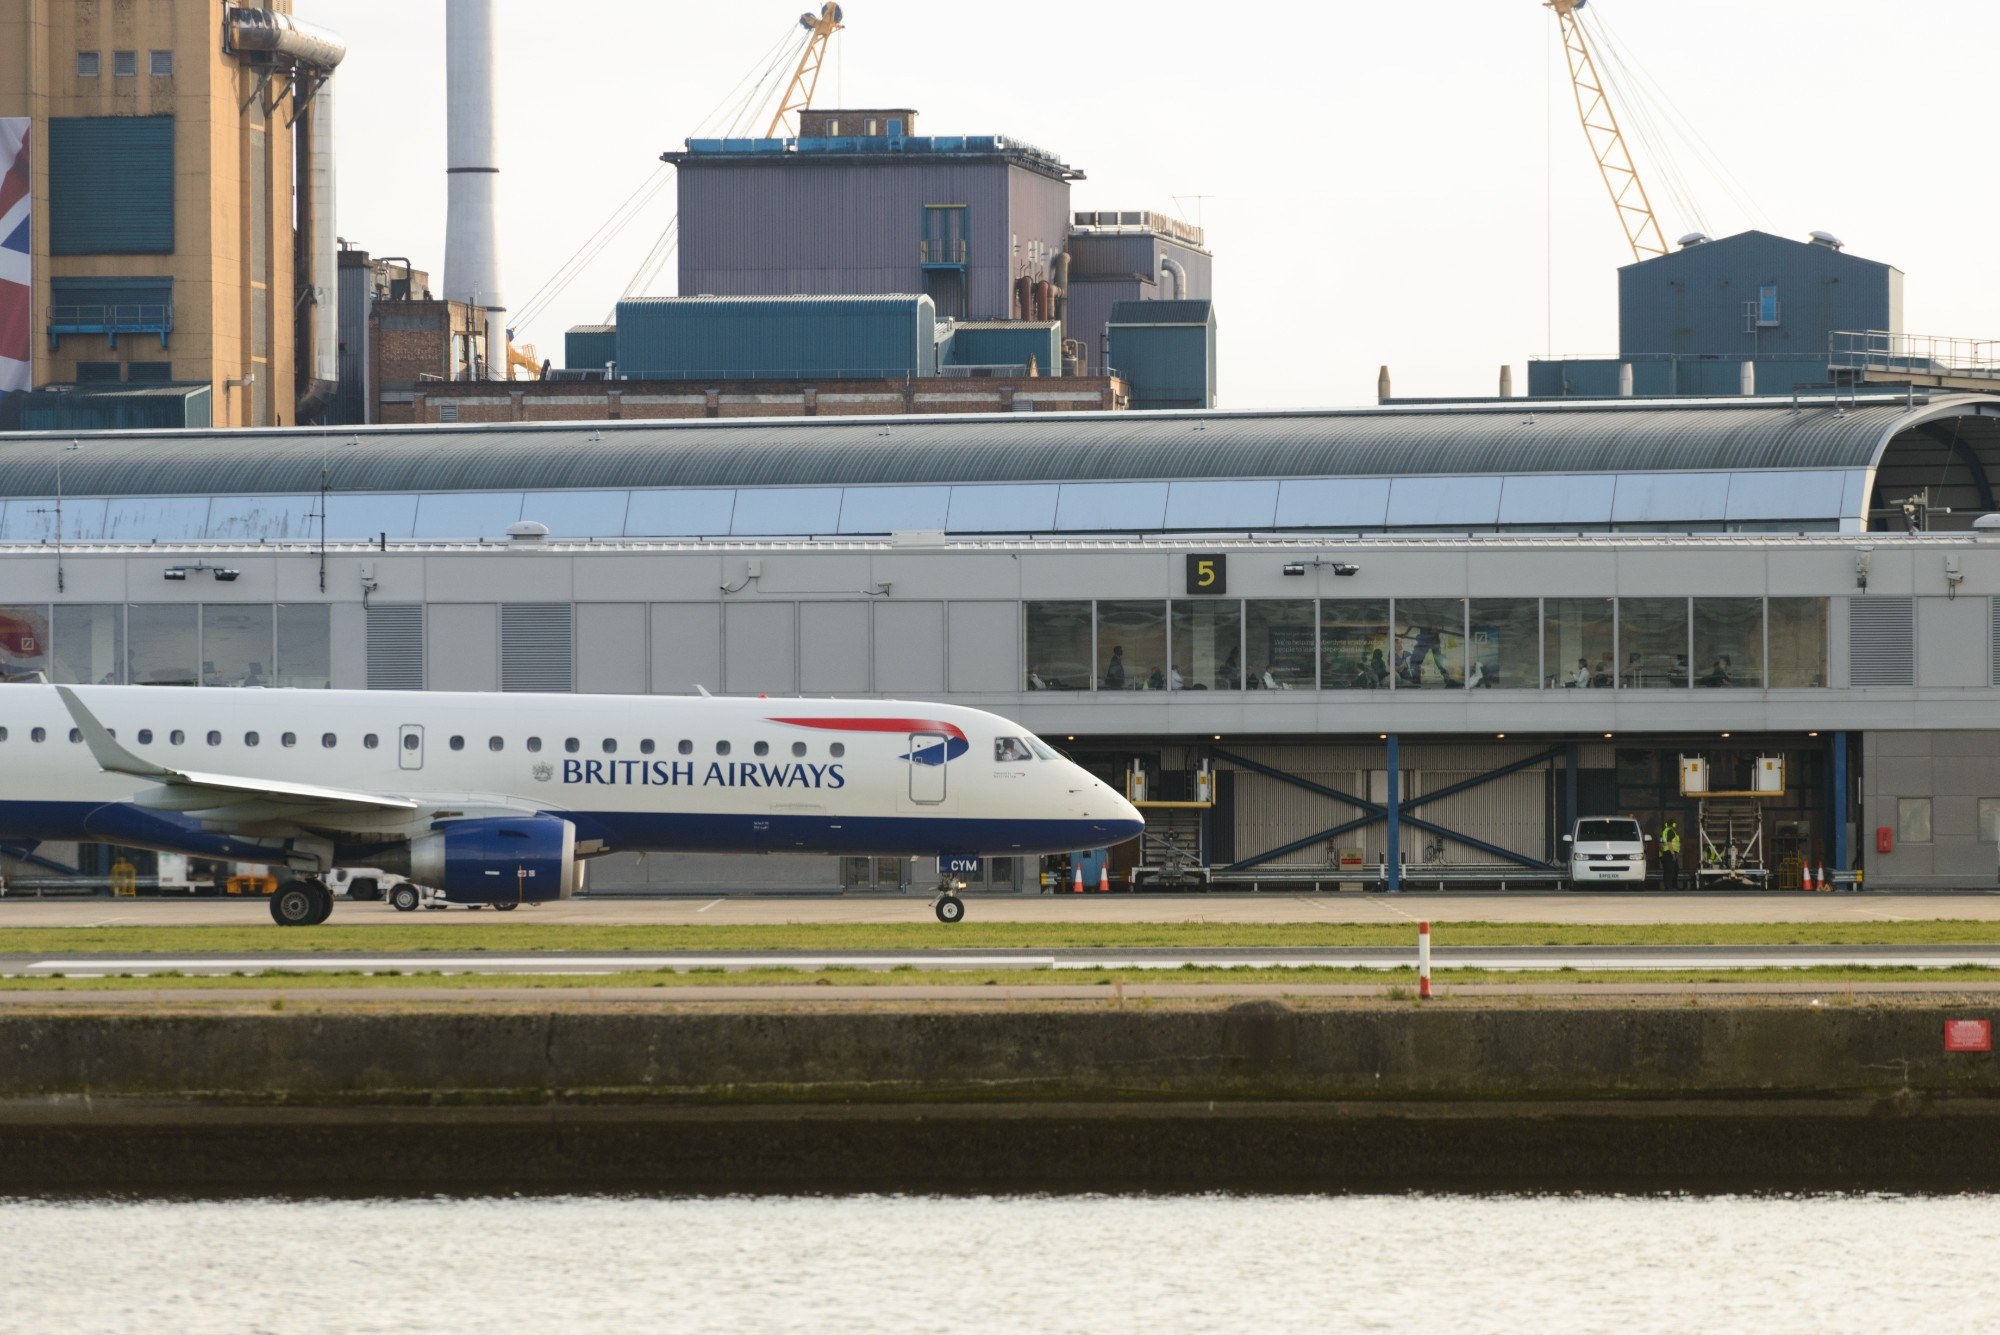 A British Airways plane on the runway at London City Airport